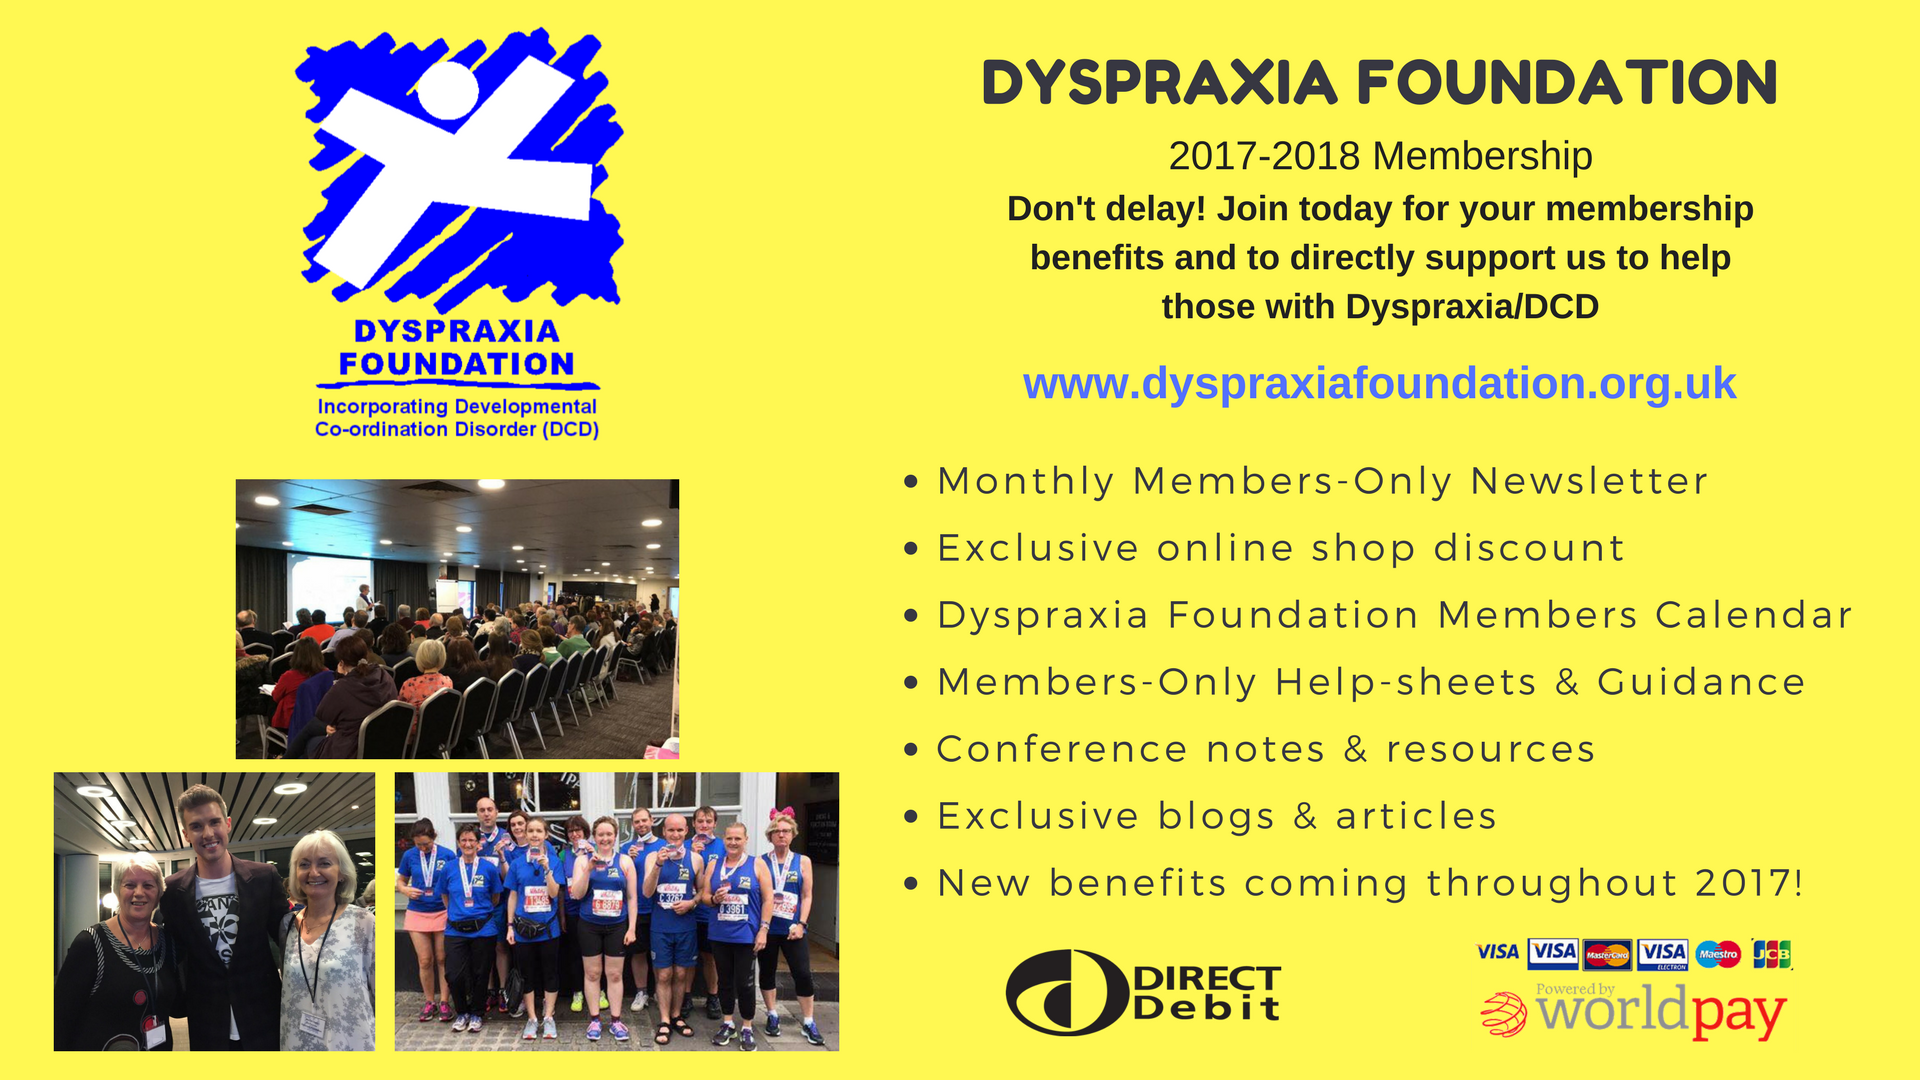 Join the Dyspraxia Foundation for 2017-18